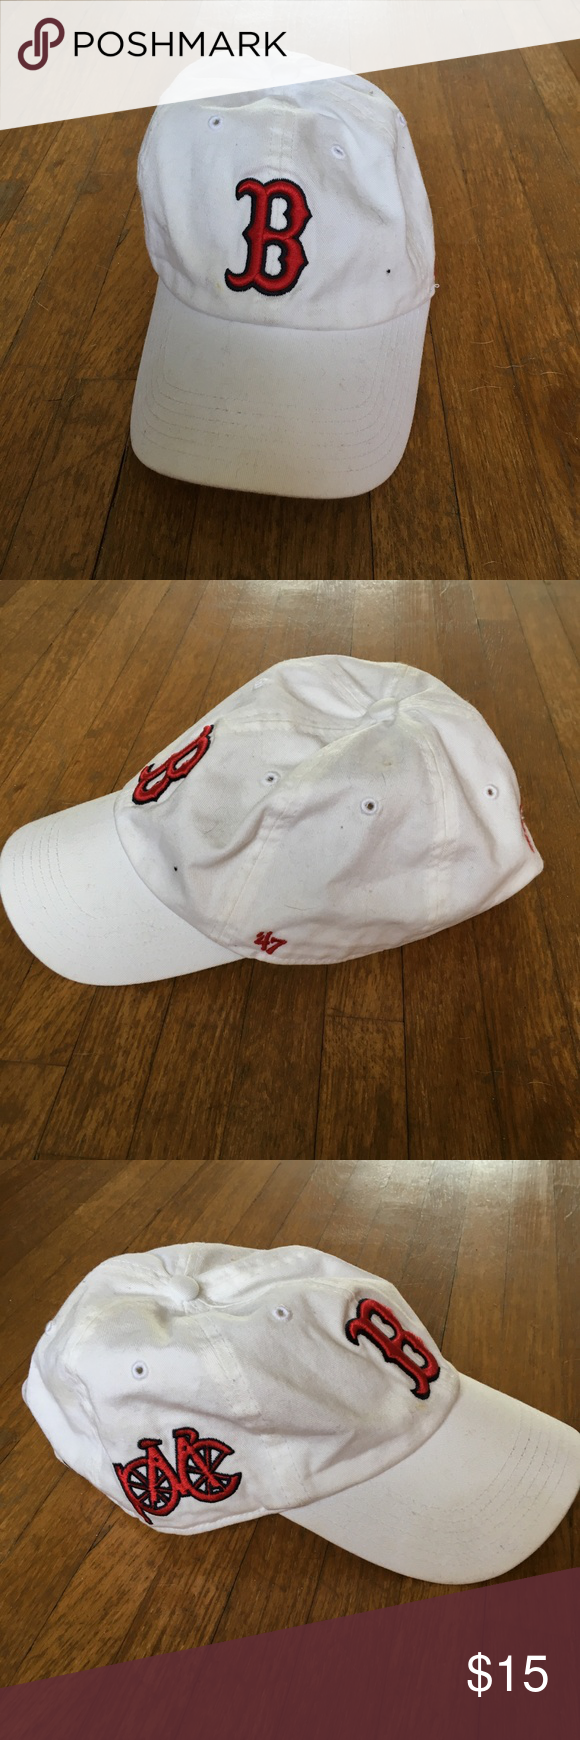 White Boston Red Sox Hat 2013 Pmc Day Logos Red Sox Hat Boston Red Sox Hat Boston Red Sox